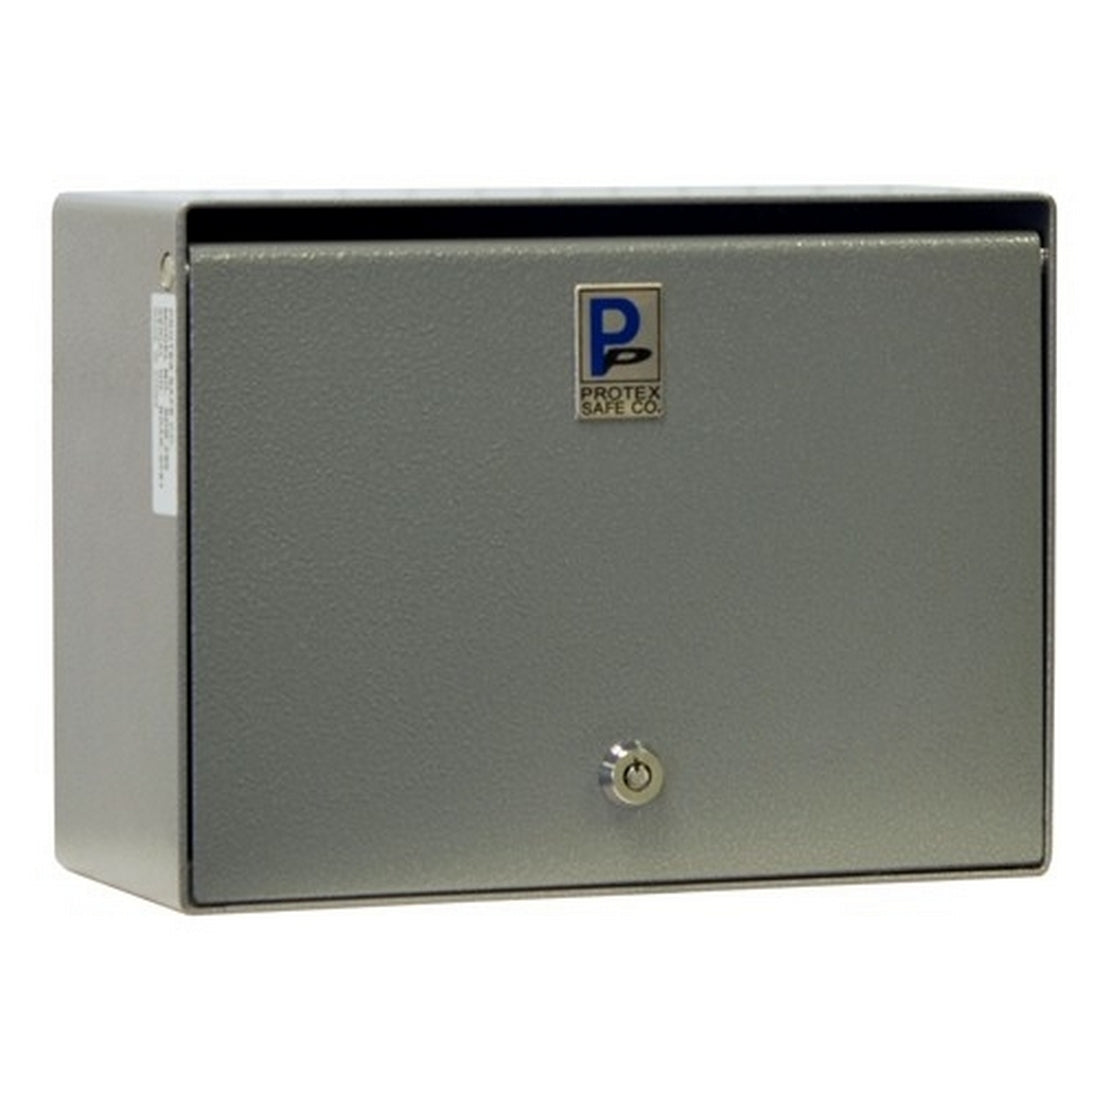 Protex Safe SDB-250 Wall Mounted Drop Box With Tubular Lock